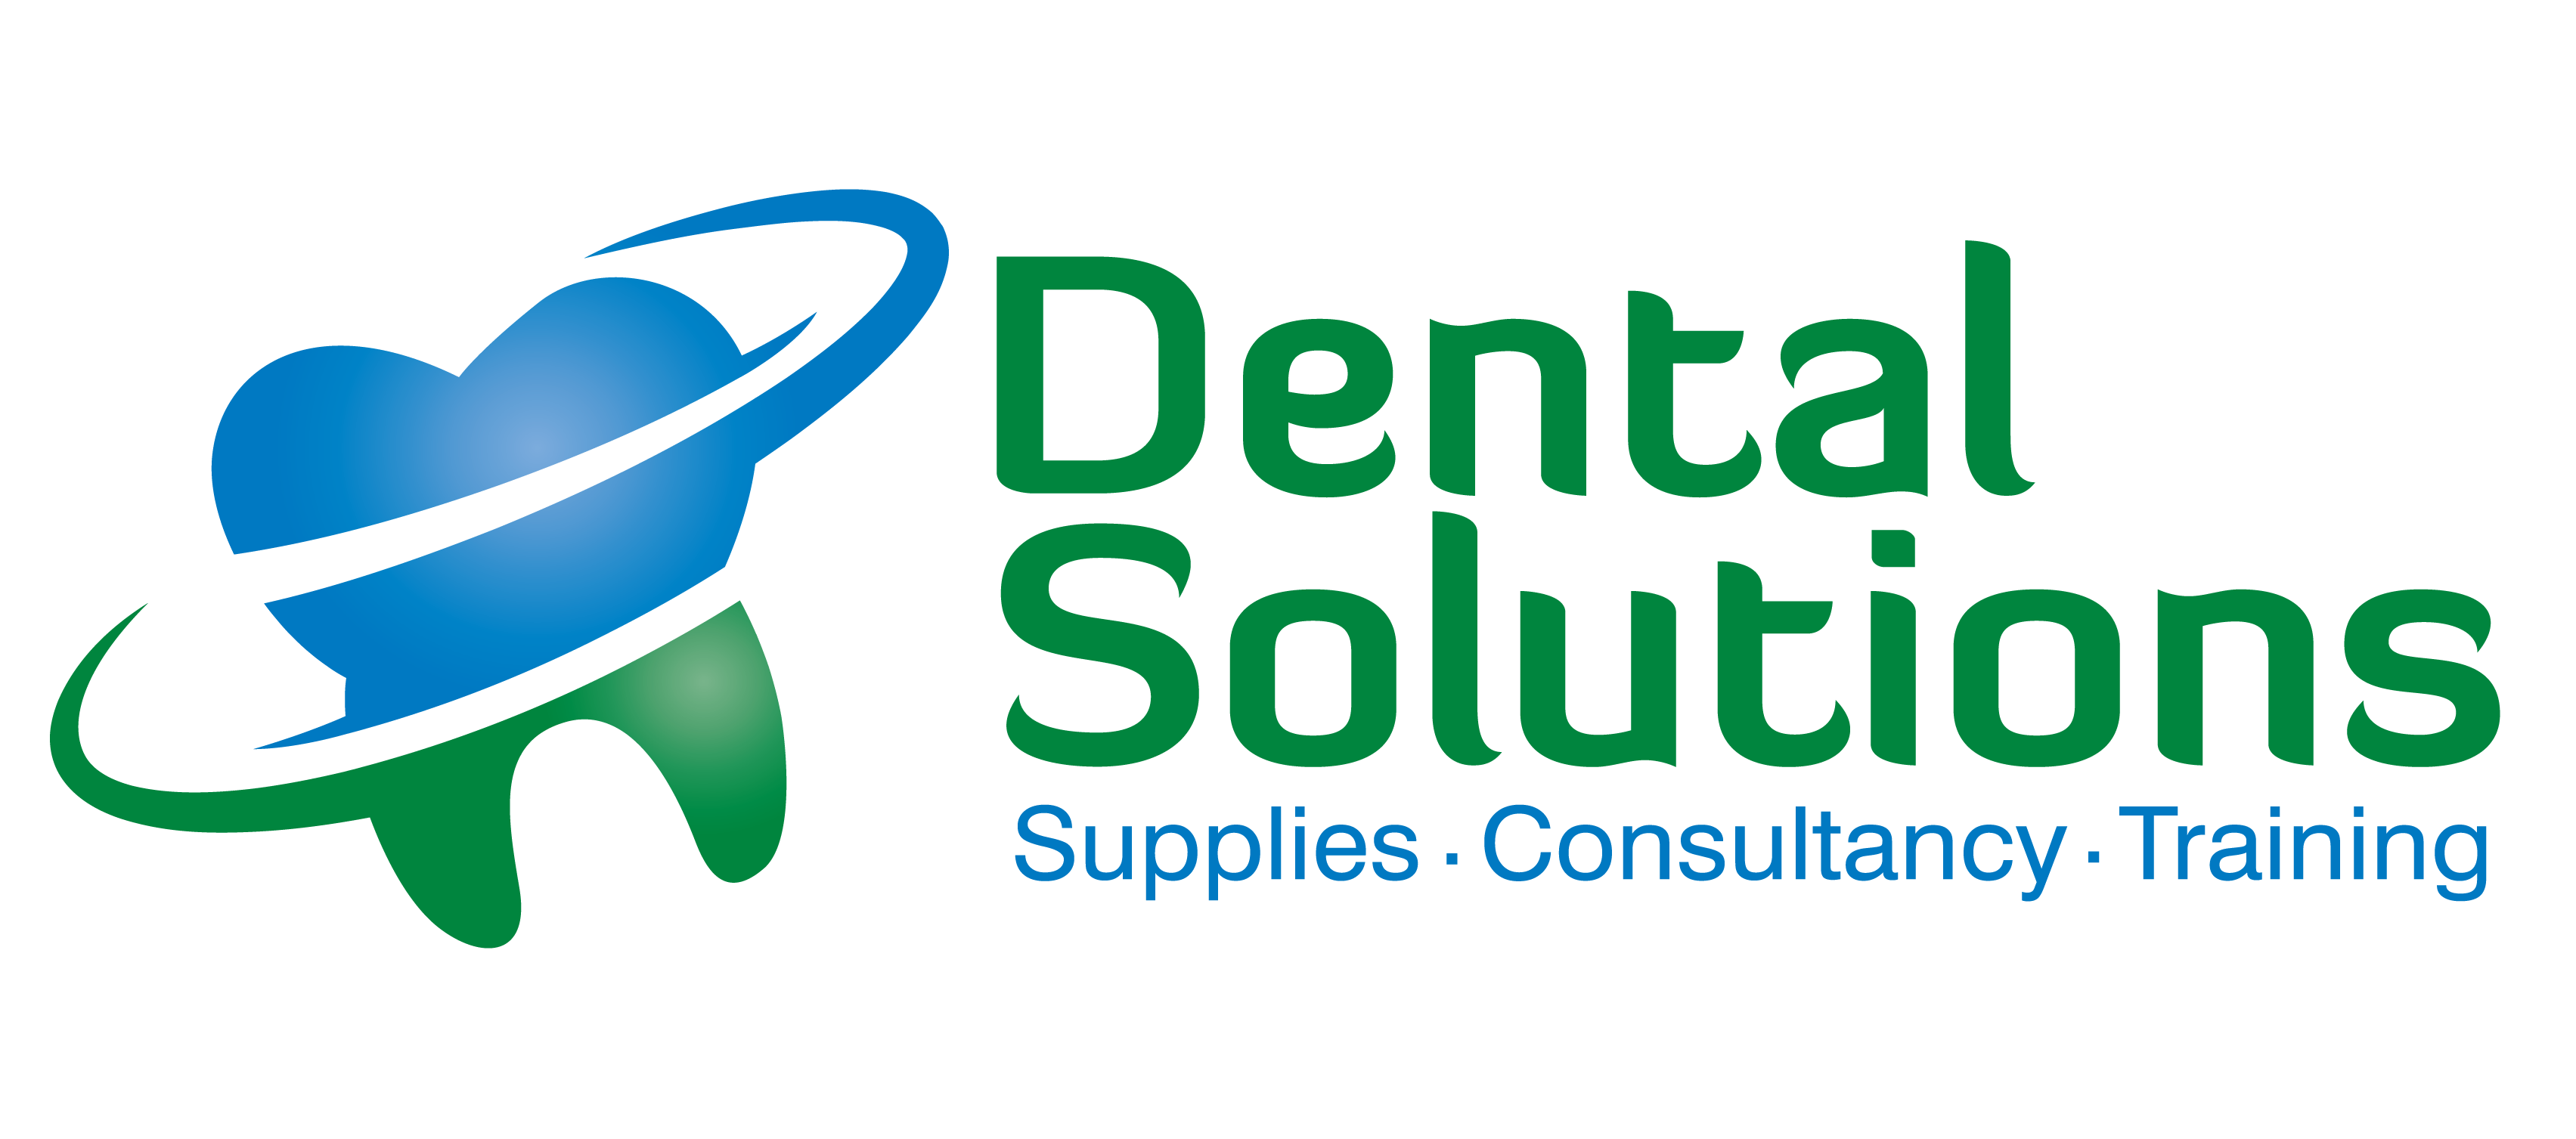 Dentist clipart instrument. Home dental solutions